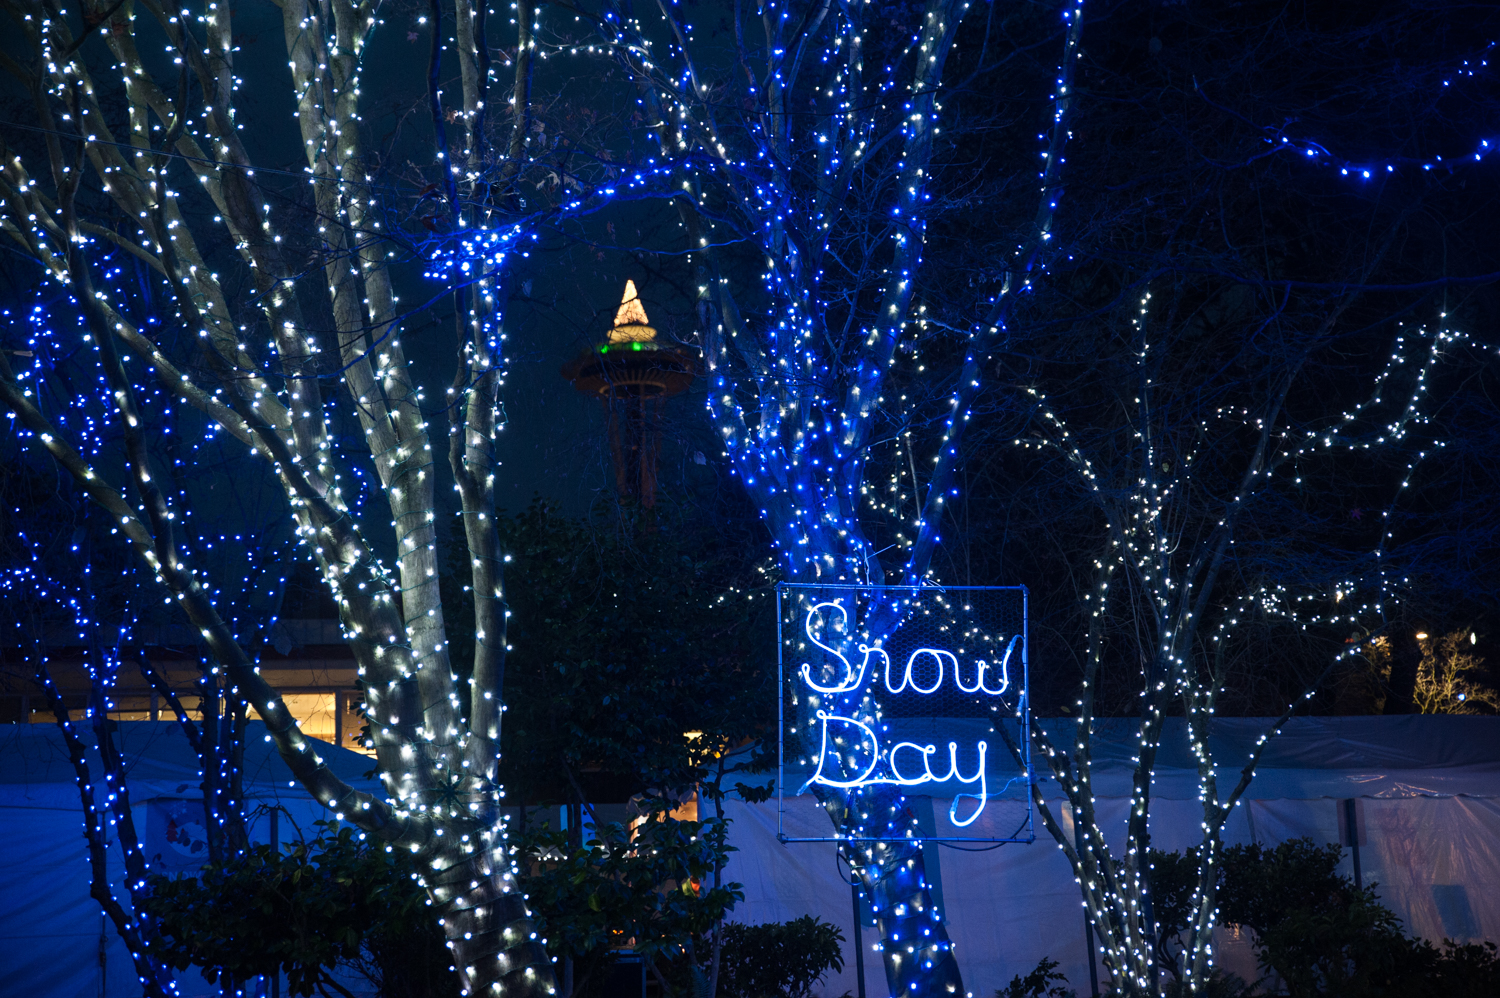 Holiday cheer, and NO worries about traffic or the city shutting down? Now THAT'S our kind of Snow Day! And it's happening nightly from Dec. 6 through Jan. 20 in Denny Park, South Lake Union. We stopped by a little preview of what patrons can expect from the immersive light installation, complete with 300,000 lights, displayed the park this holiday season. And guys - it's good. More info{ }online. (Image: Elizabeth Crook / Seattle Refined){ }